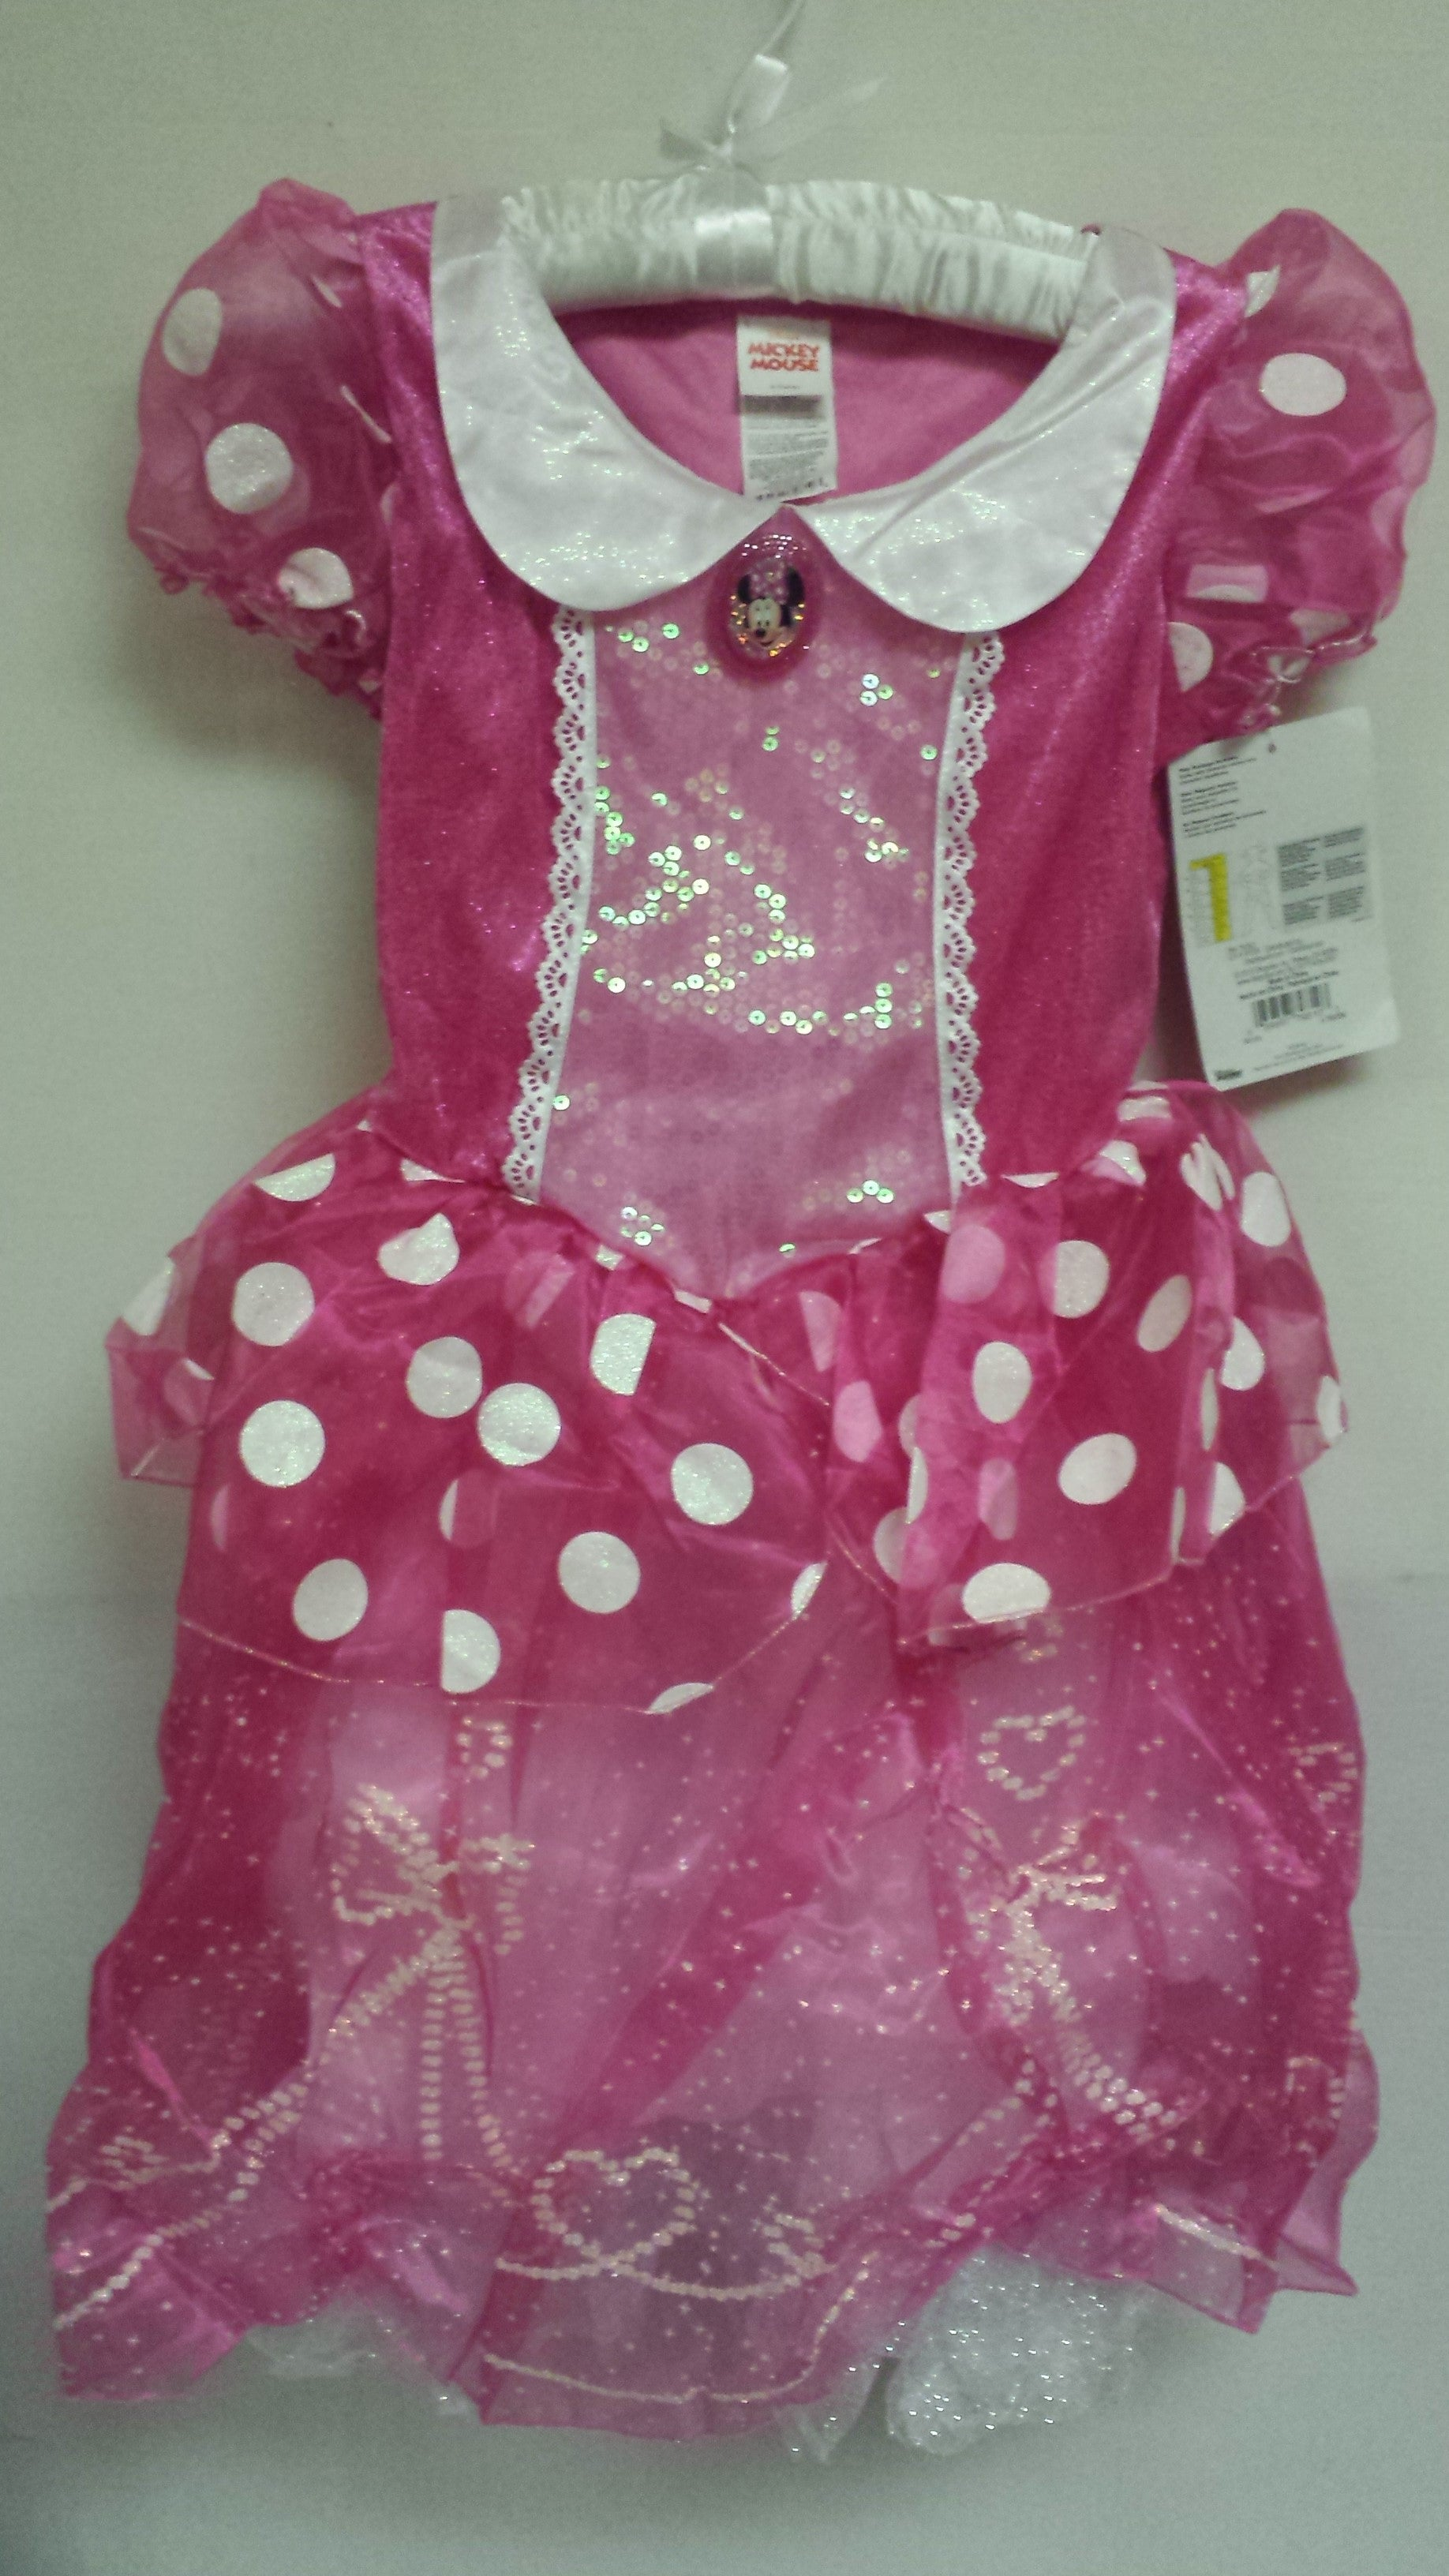 Disney Minnie Mouse Deluxe Child Costume, Medium (7-8 Years)